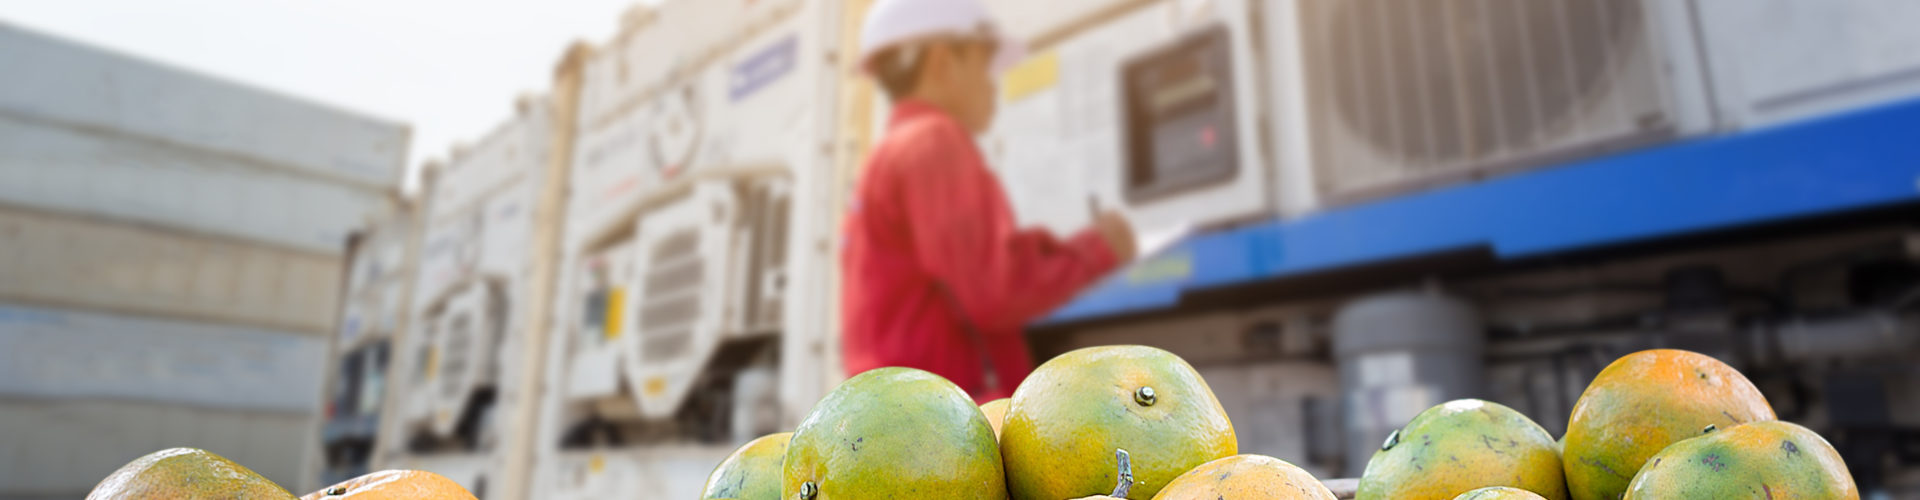 marchandises agroalimentaires